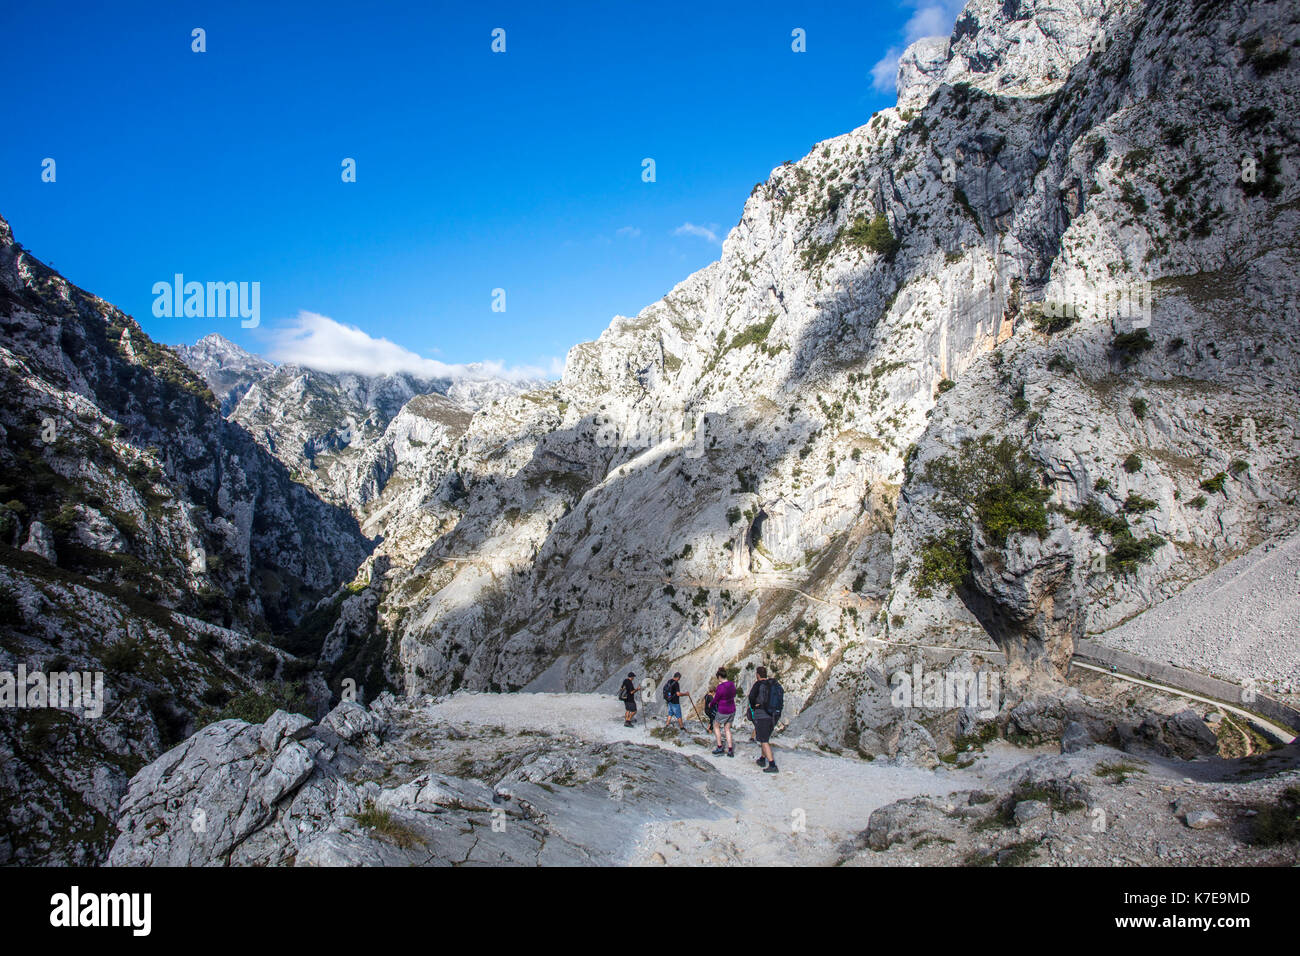 Ruta del Cares. Asturias. Picos de Europa. It is a narrow trail built alongside the river Cares surrounded by beautiful mountains - Stock Image